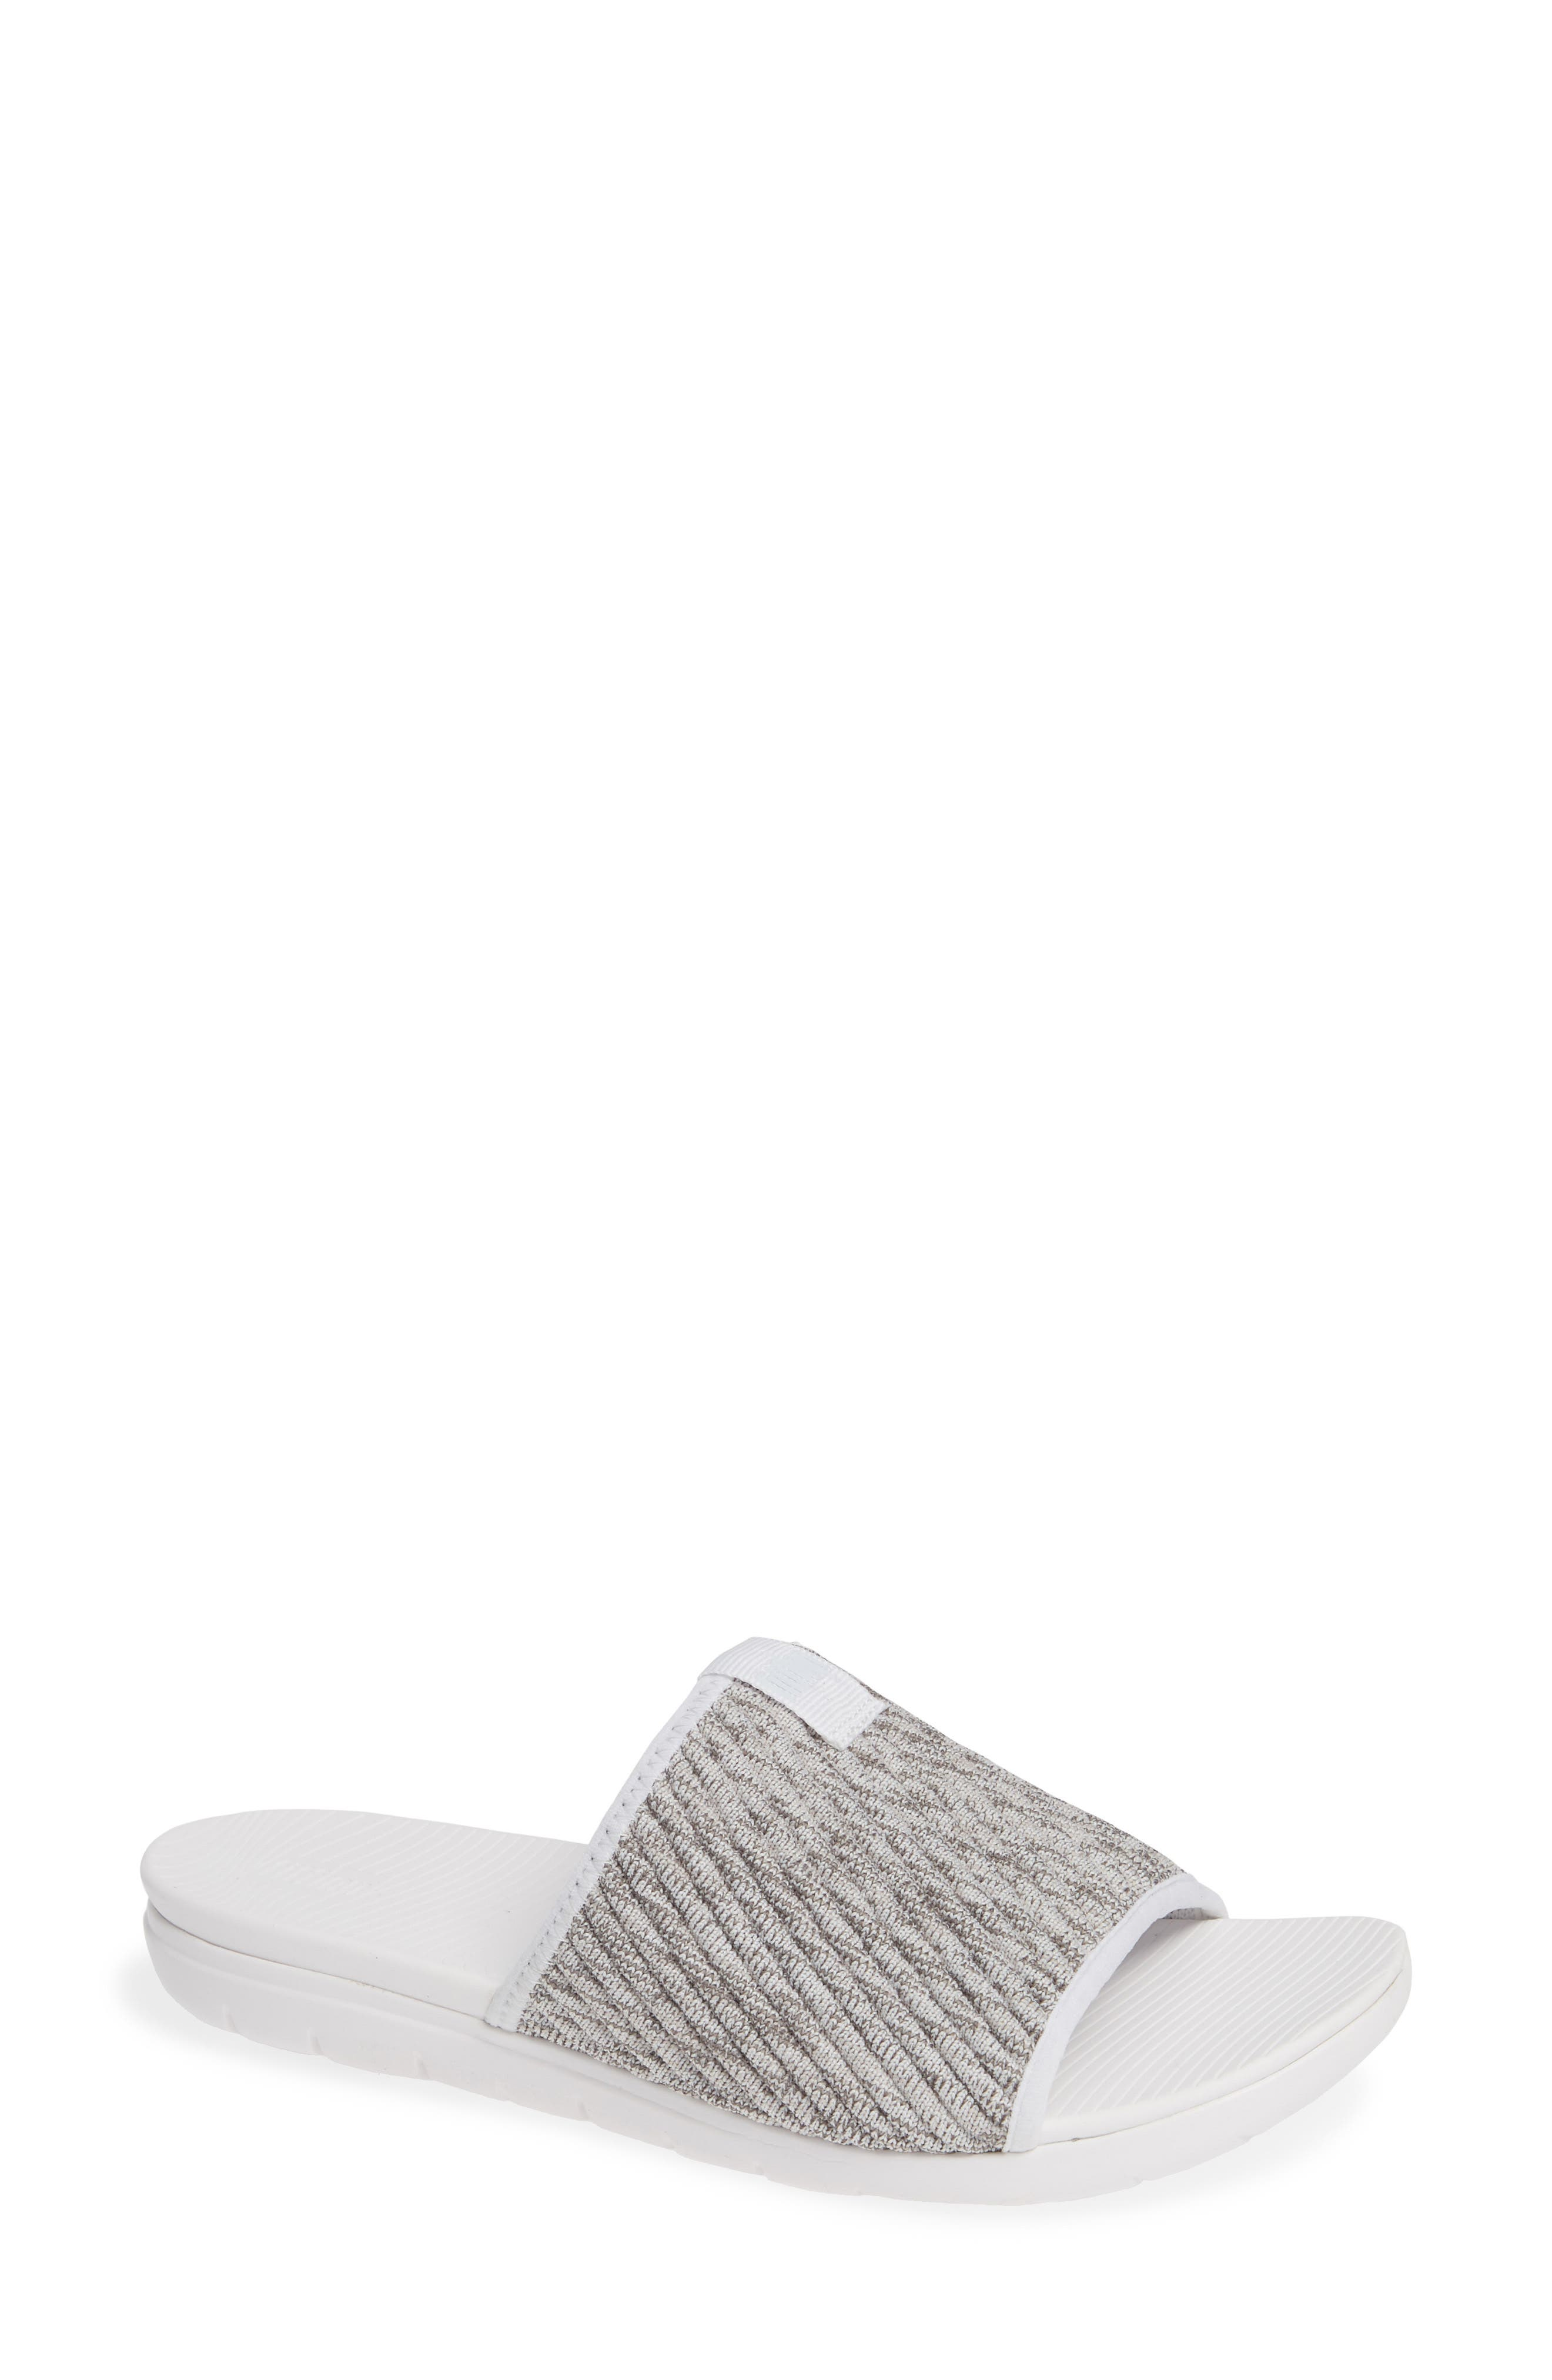 FITFLOP, Artknit Slide Sandal, Main thumbnail 1, color, URBAN WHITE MIX FABRIC